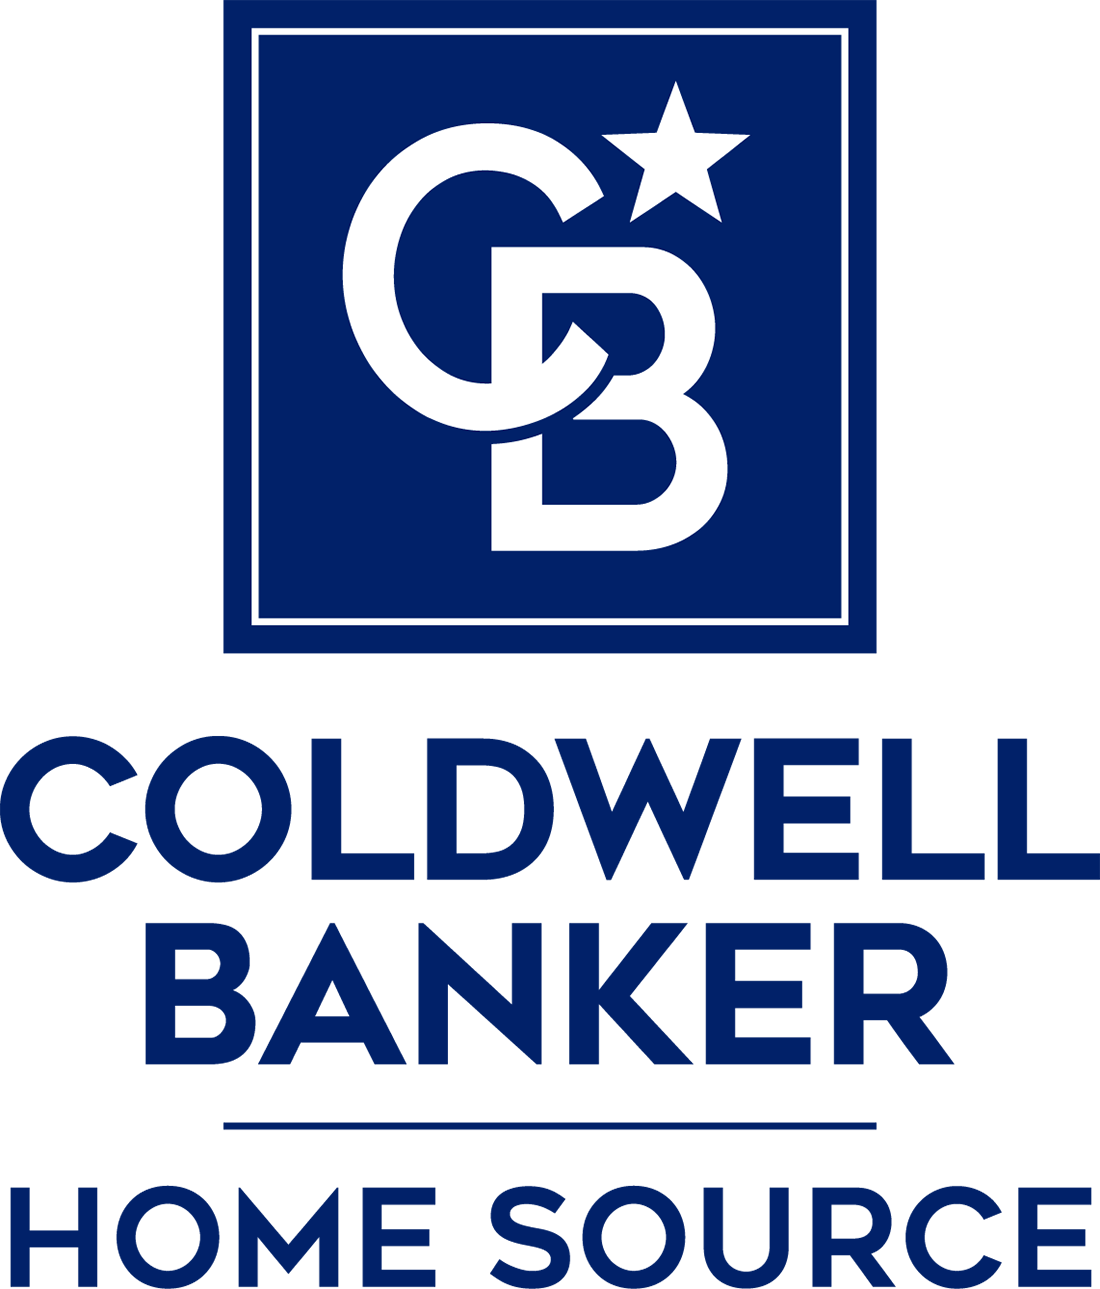 Ana Meza - Coldwell Banker Home Source Logo